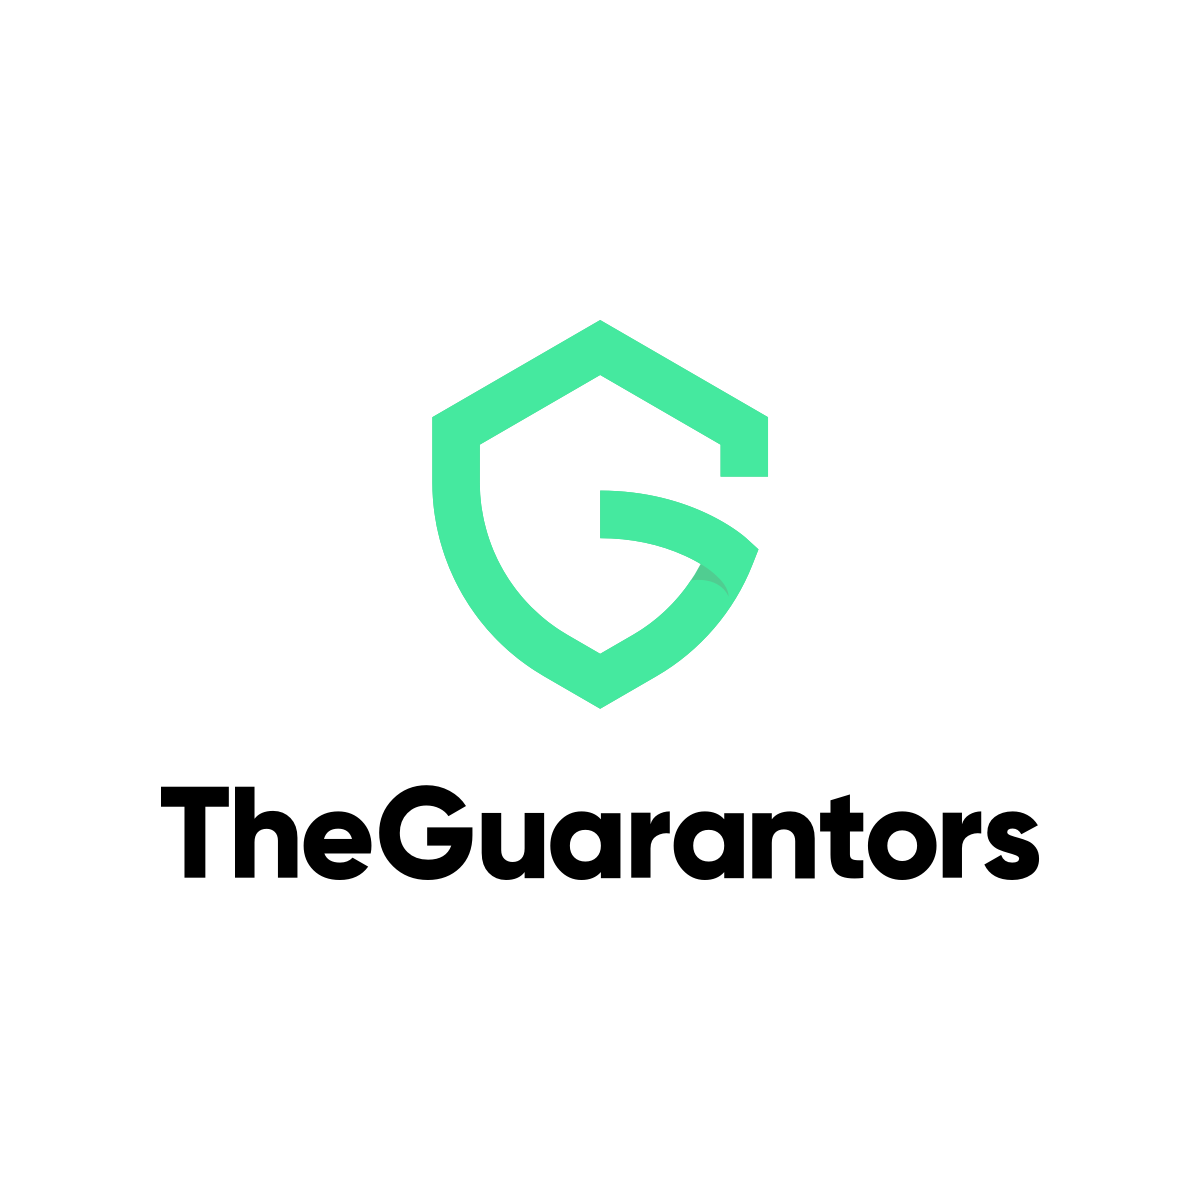 Theguarantors We Can Be Your Guarantor